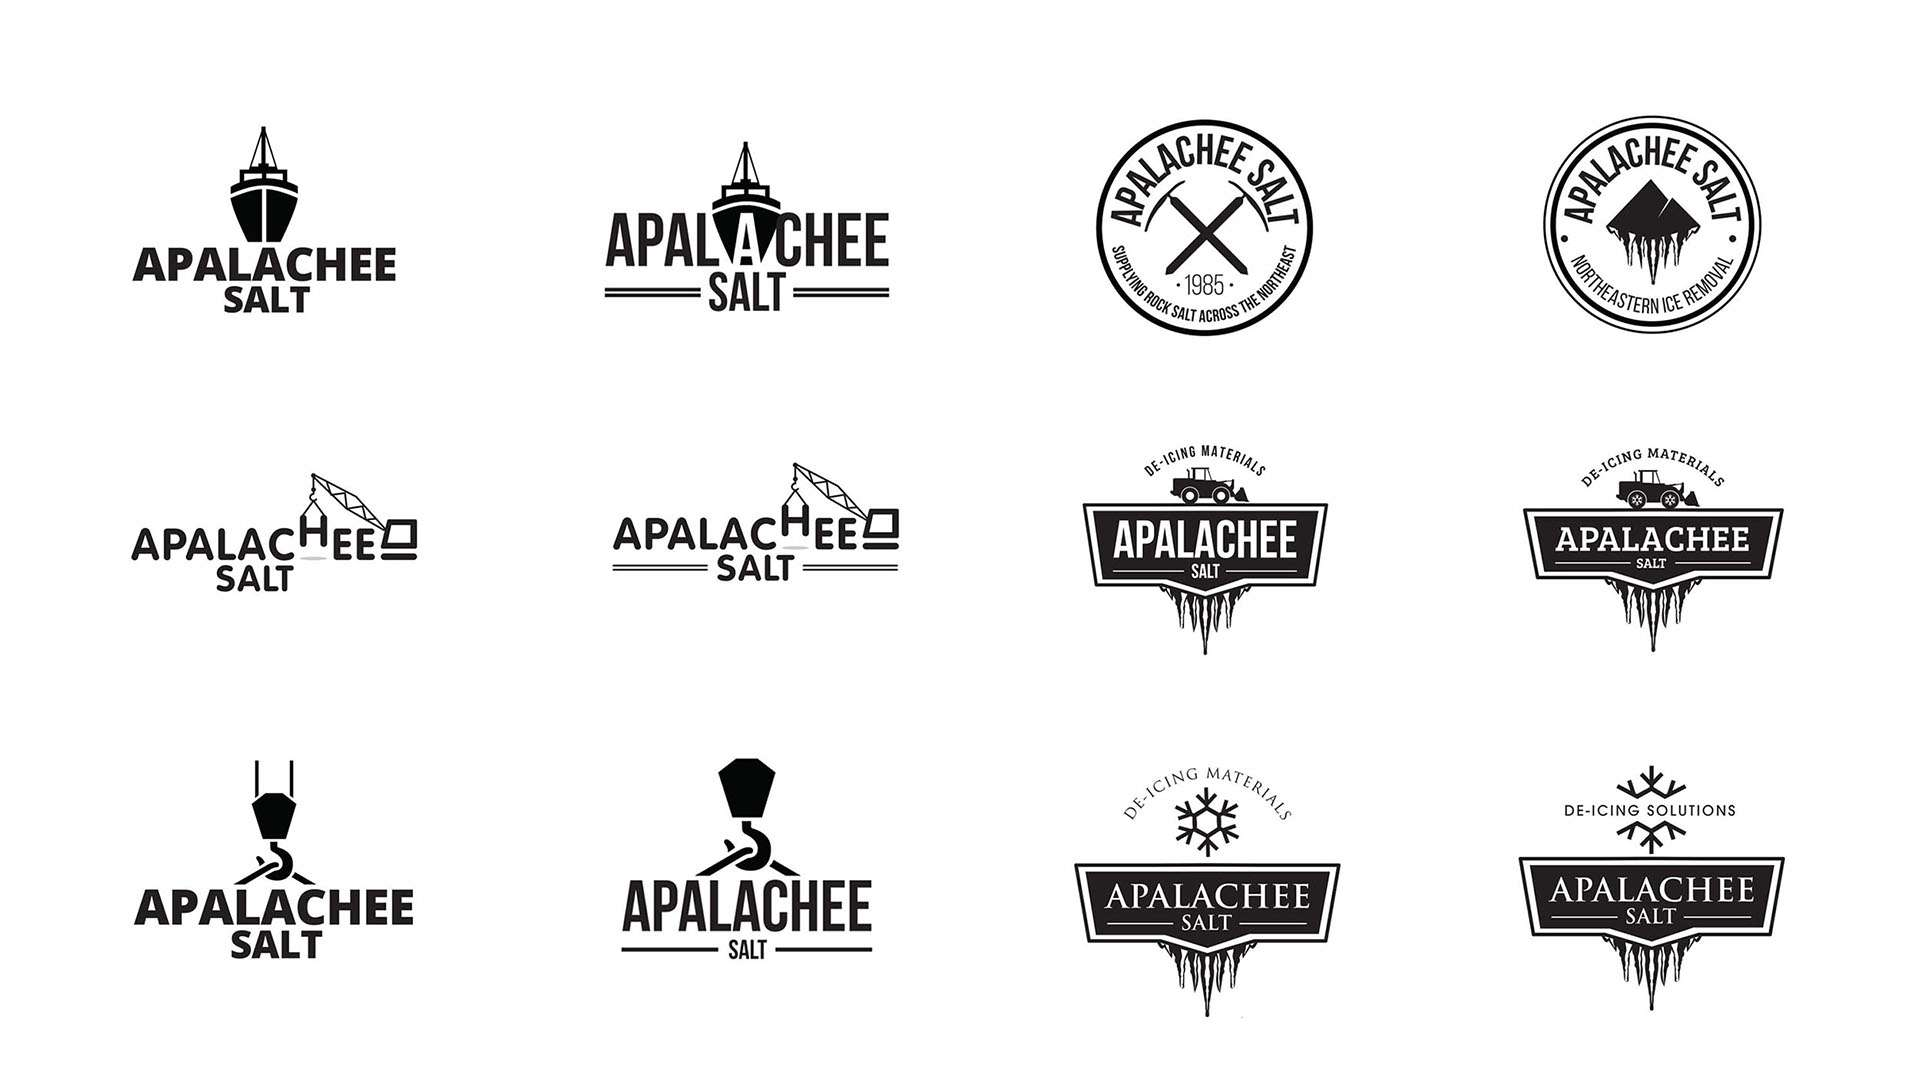 Crest logos and ideation for professional shipment services.